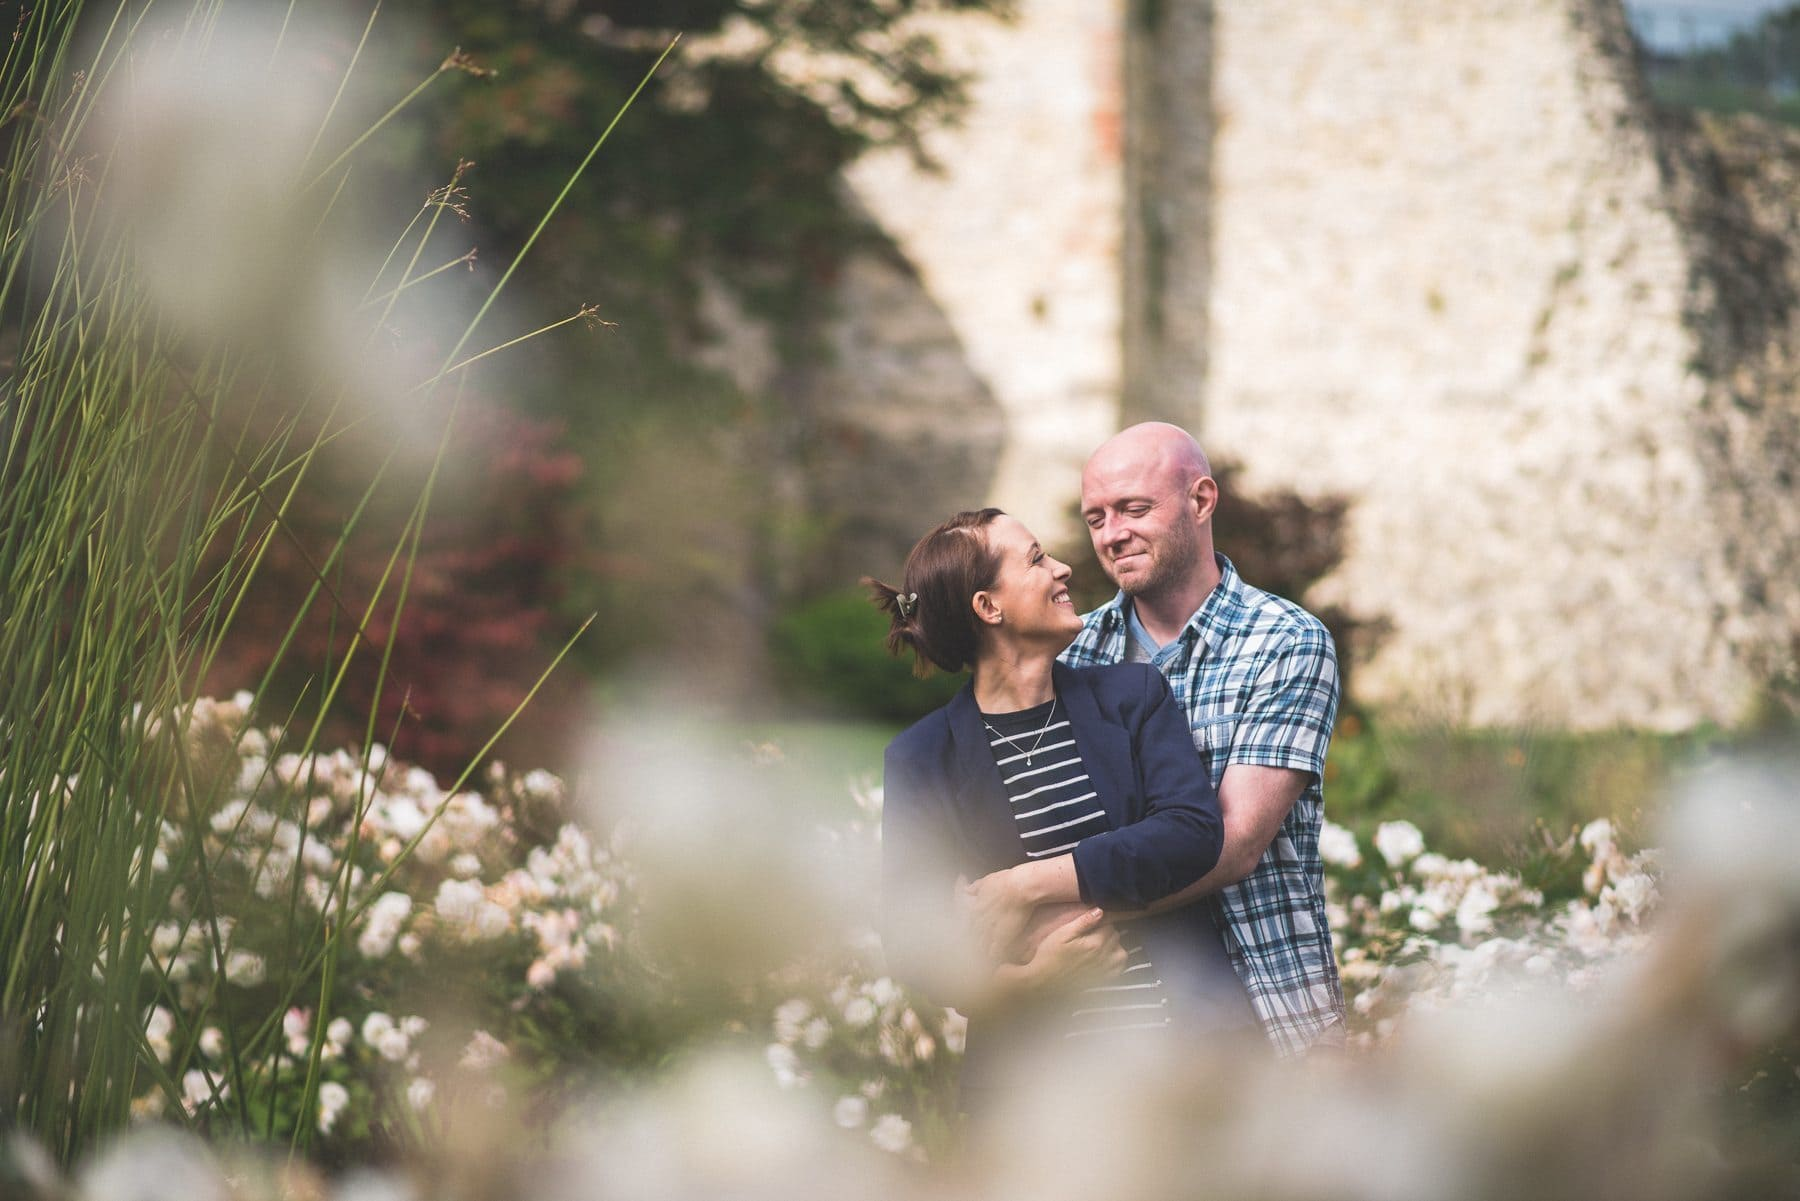 Maria Assia photography captures an early morning prewedding shoot at Farnham Castle